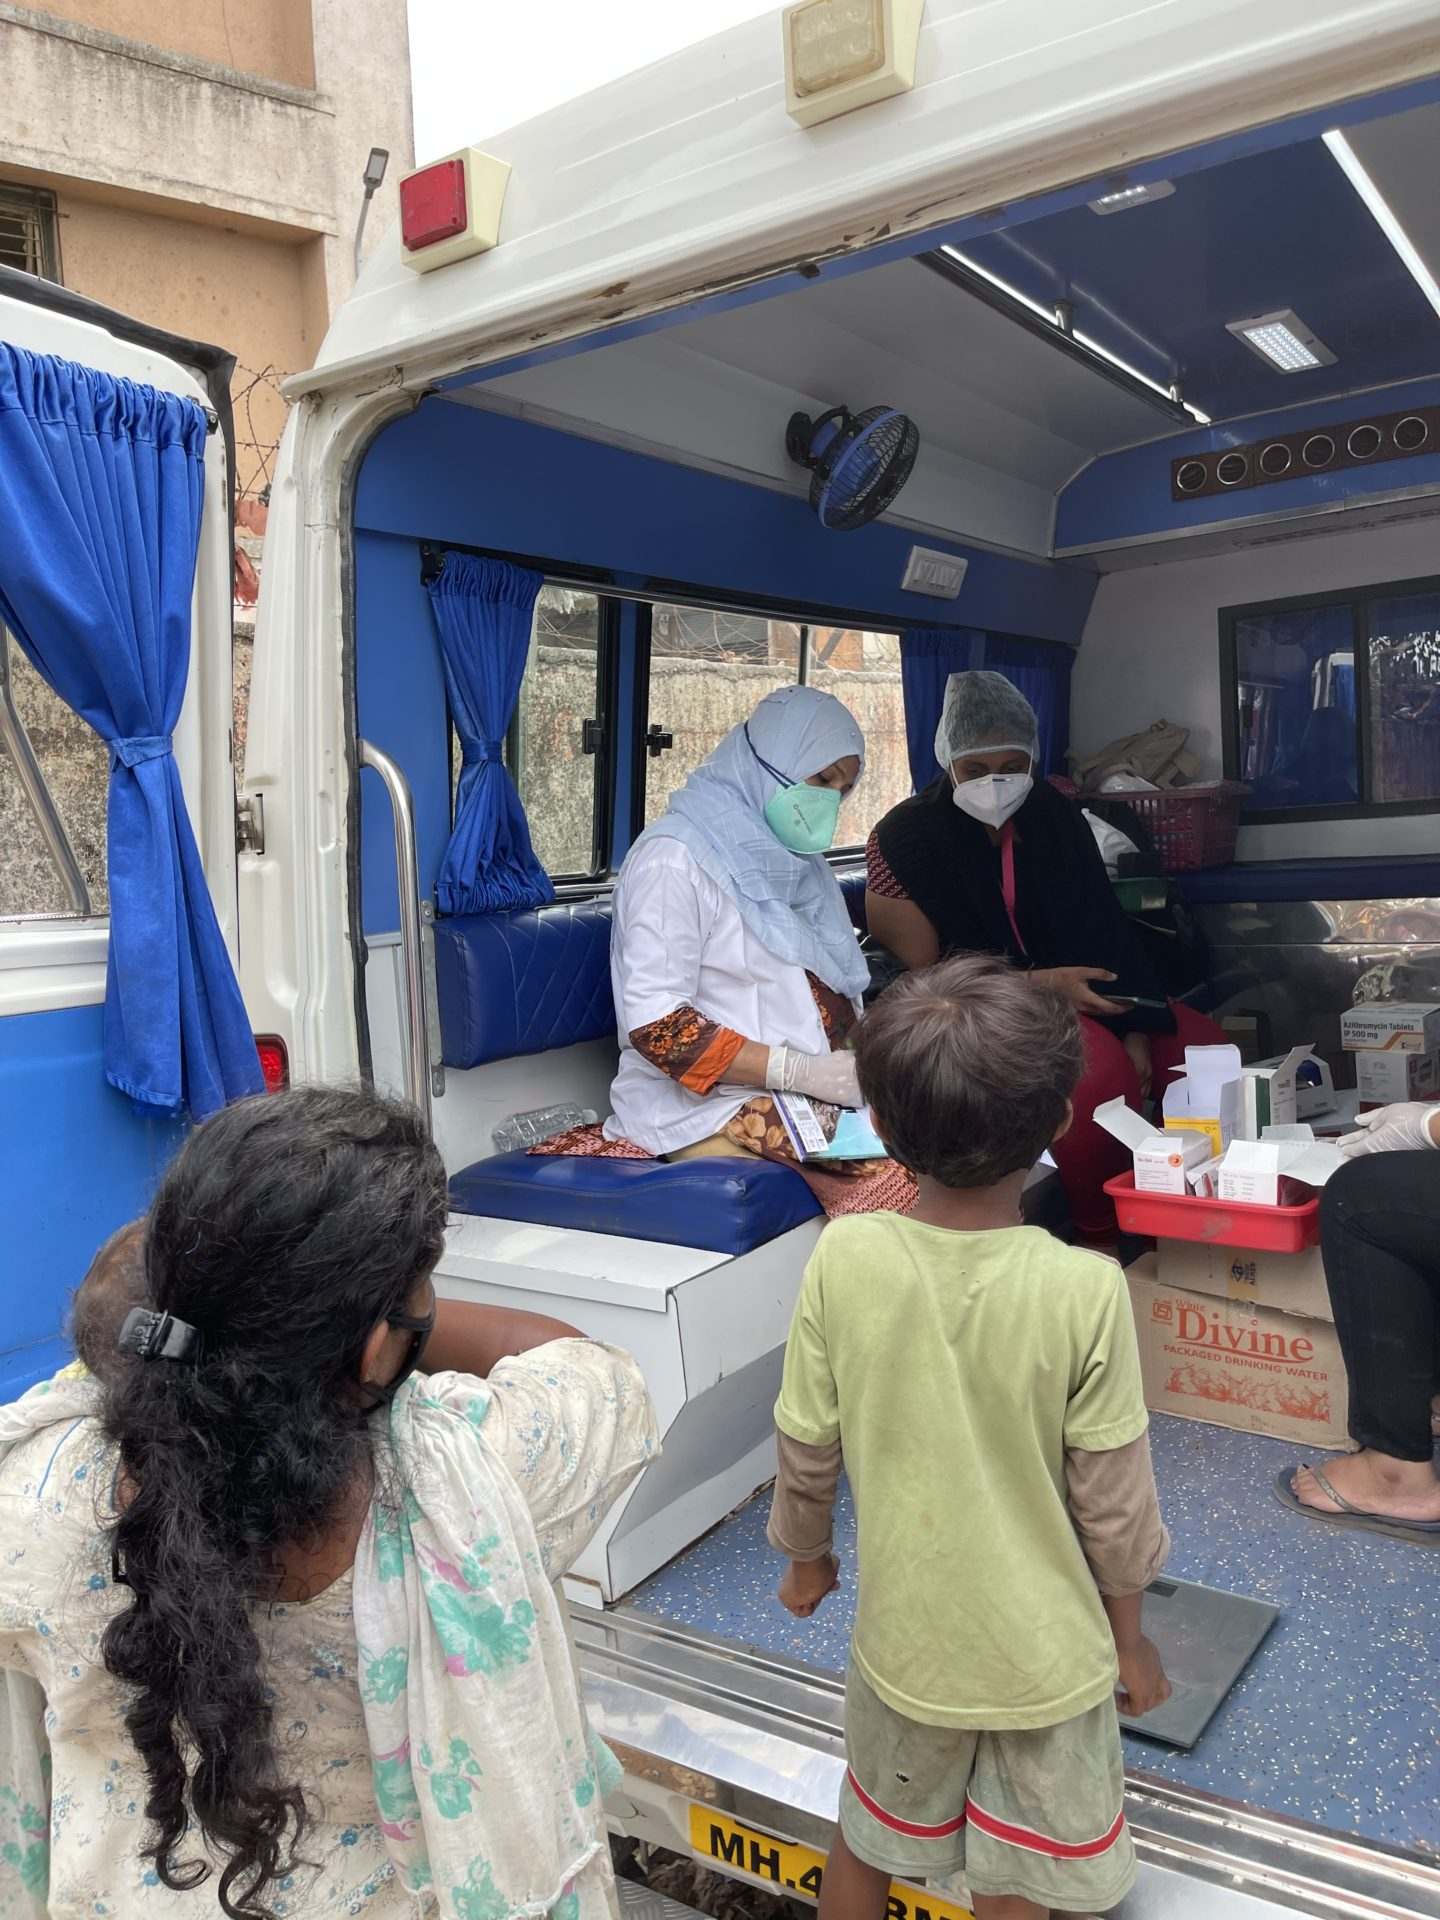 In this photo, one of Myna's doctors and nurses is sitting inside the mobile clinic checking on some patient case forms while a young woman peers on. She is holding a baby in her arms and her young son stands at the edge of the vehicle looking at the doctor at work.